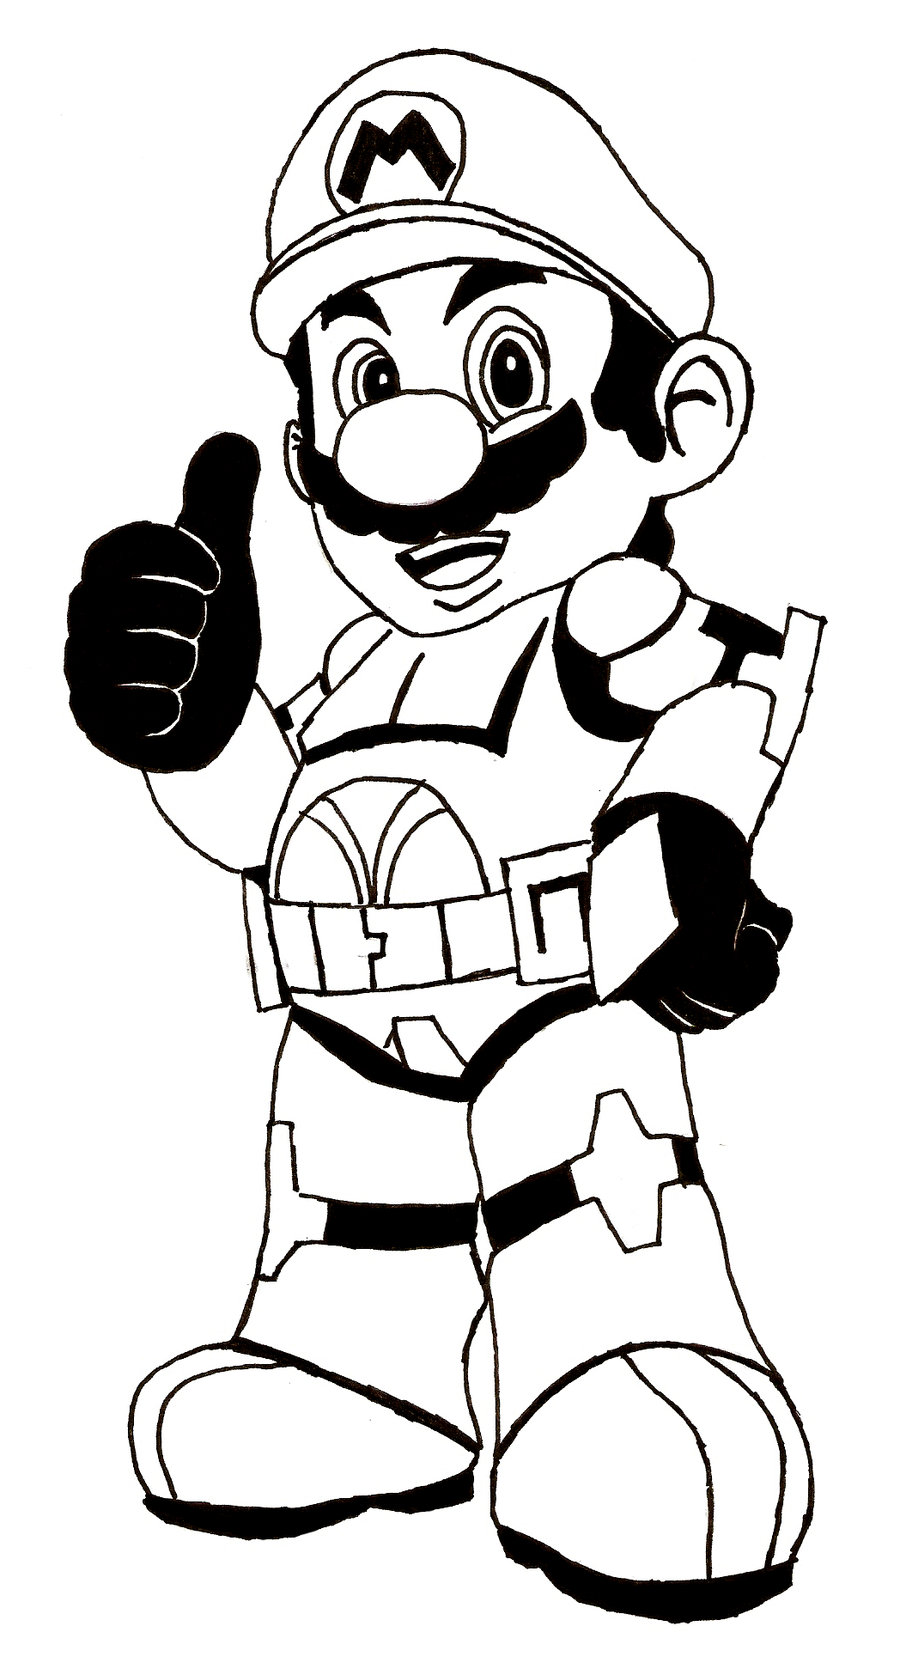 free mario coloring pages to print - Mario Coloring Page